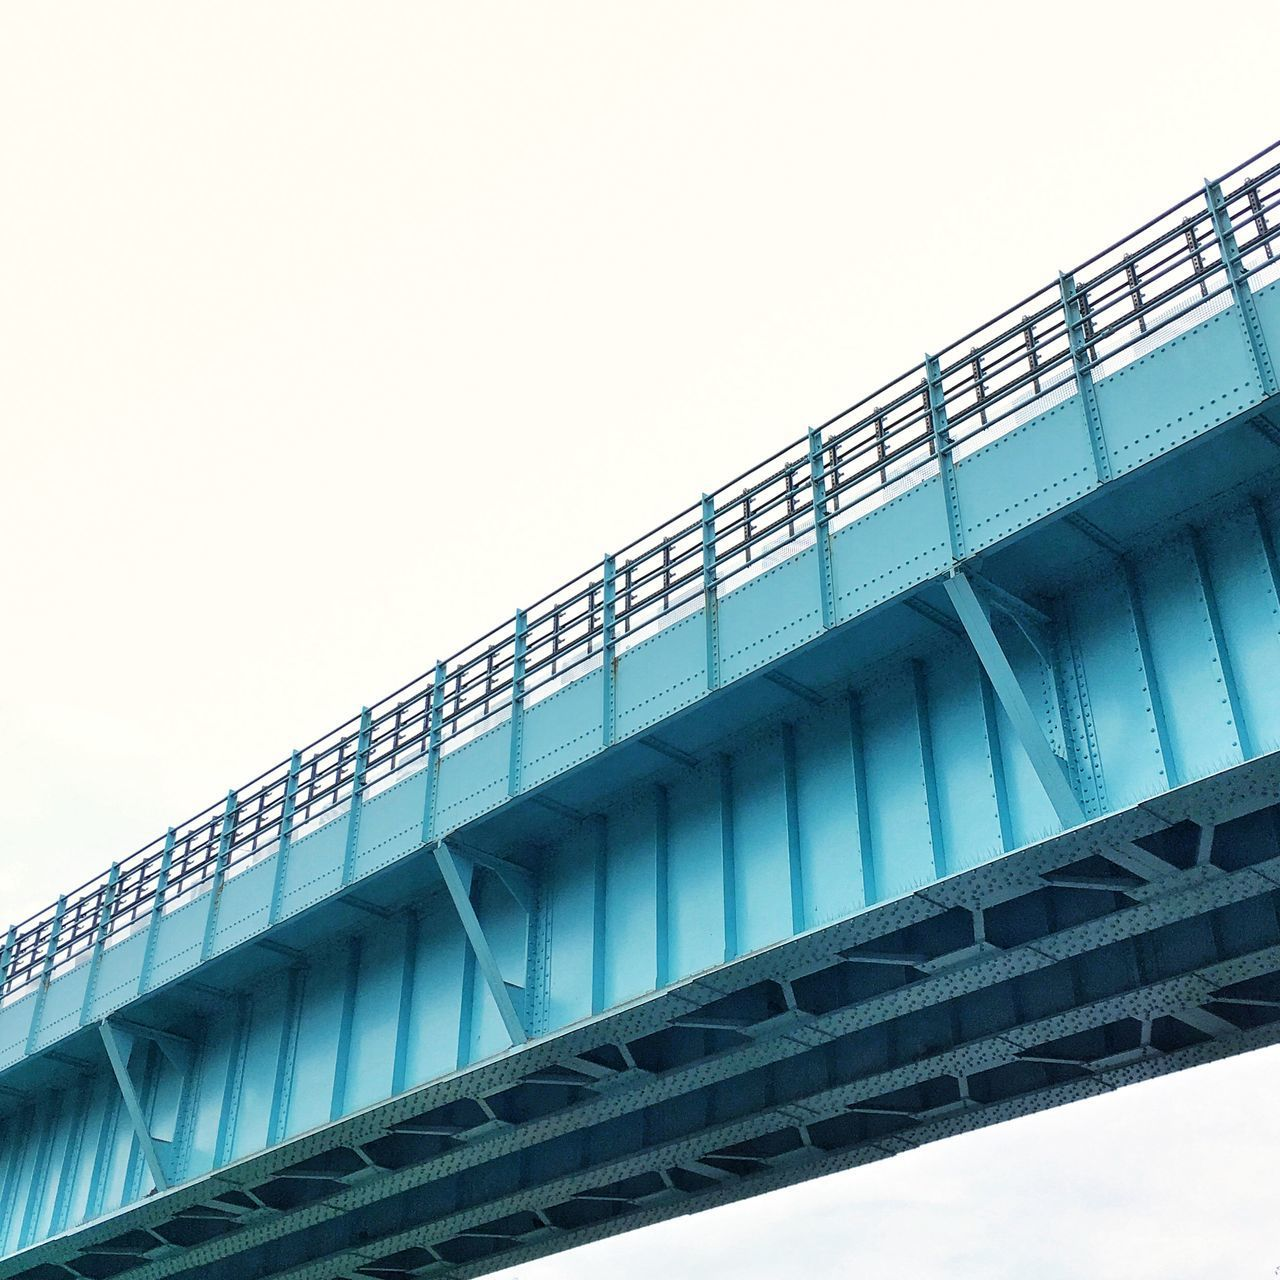 bridge - man made structure, architecture, connection, built structure, low angle view, transportation, copy space, clear sky, day, no people, outdoors, sky